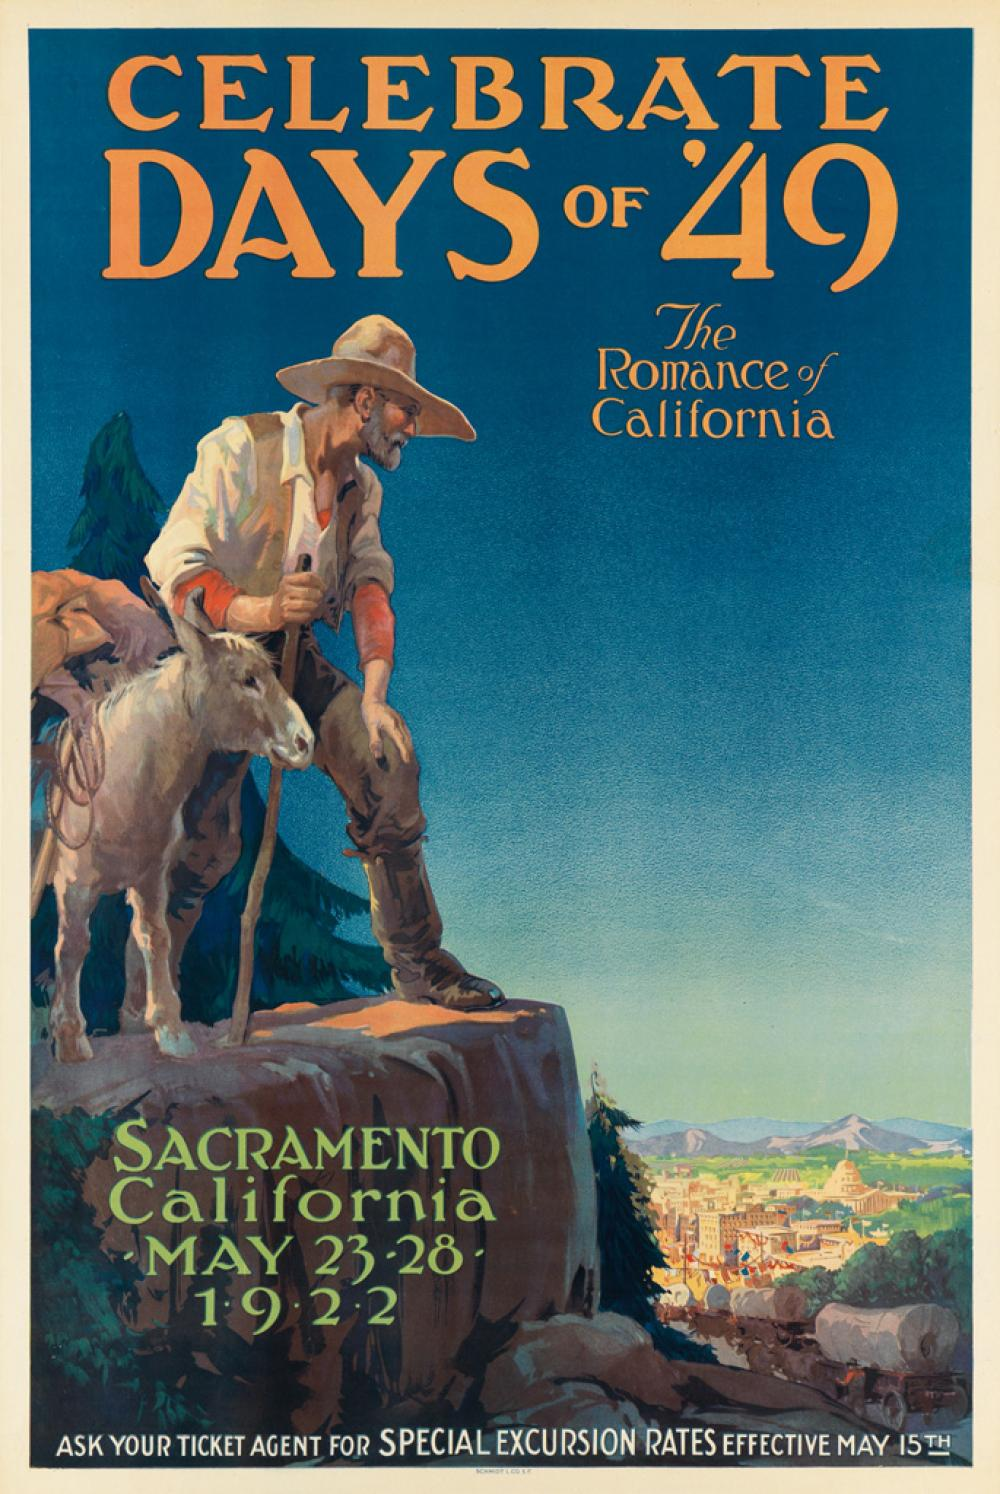 DESIGNER UNKNOWN. CELEBRATE DAYS OF '49 / THE ROMANCE OF CALIFORNIA. 1922. 29x19 inches, 75x50 cm. Schmidt L. Co., San Francisco.